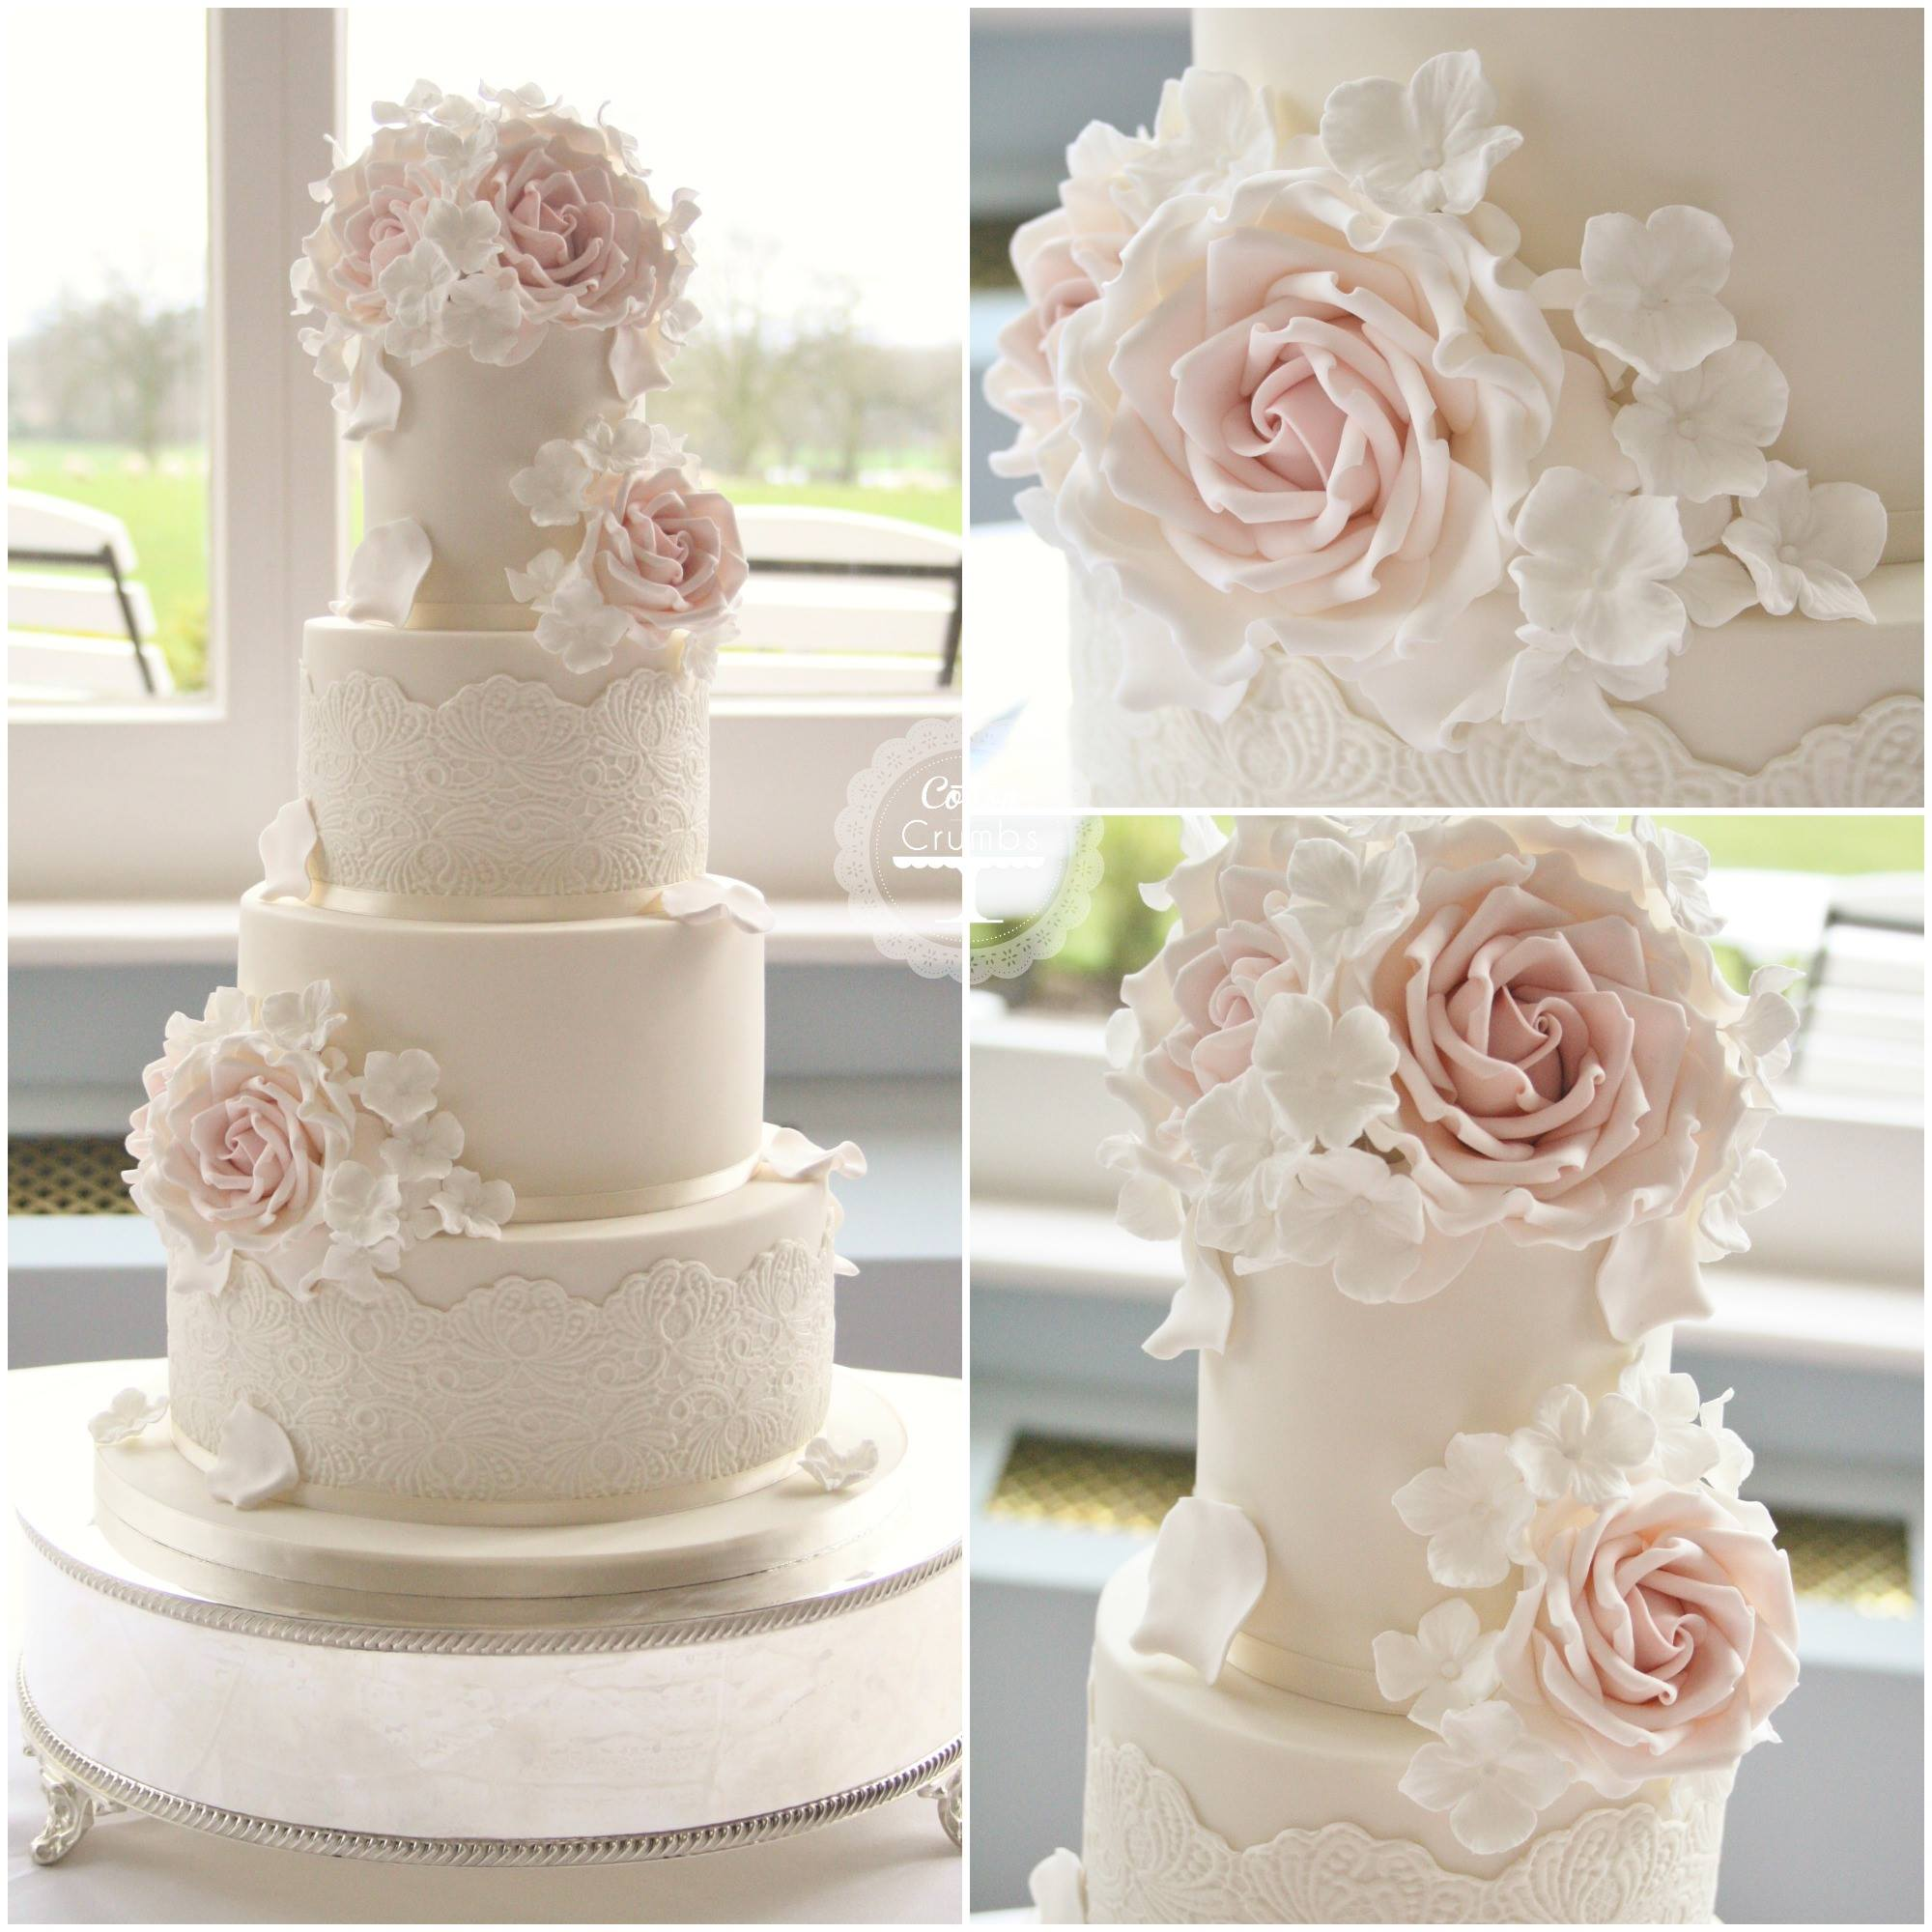 Wedding Cakes With Exceptional Details - MODwedding